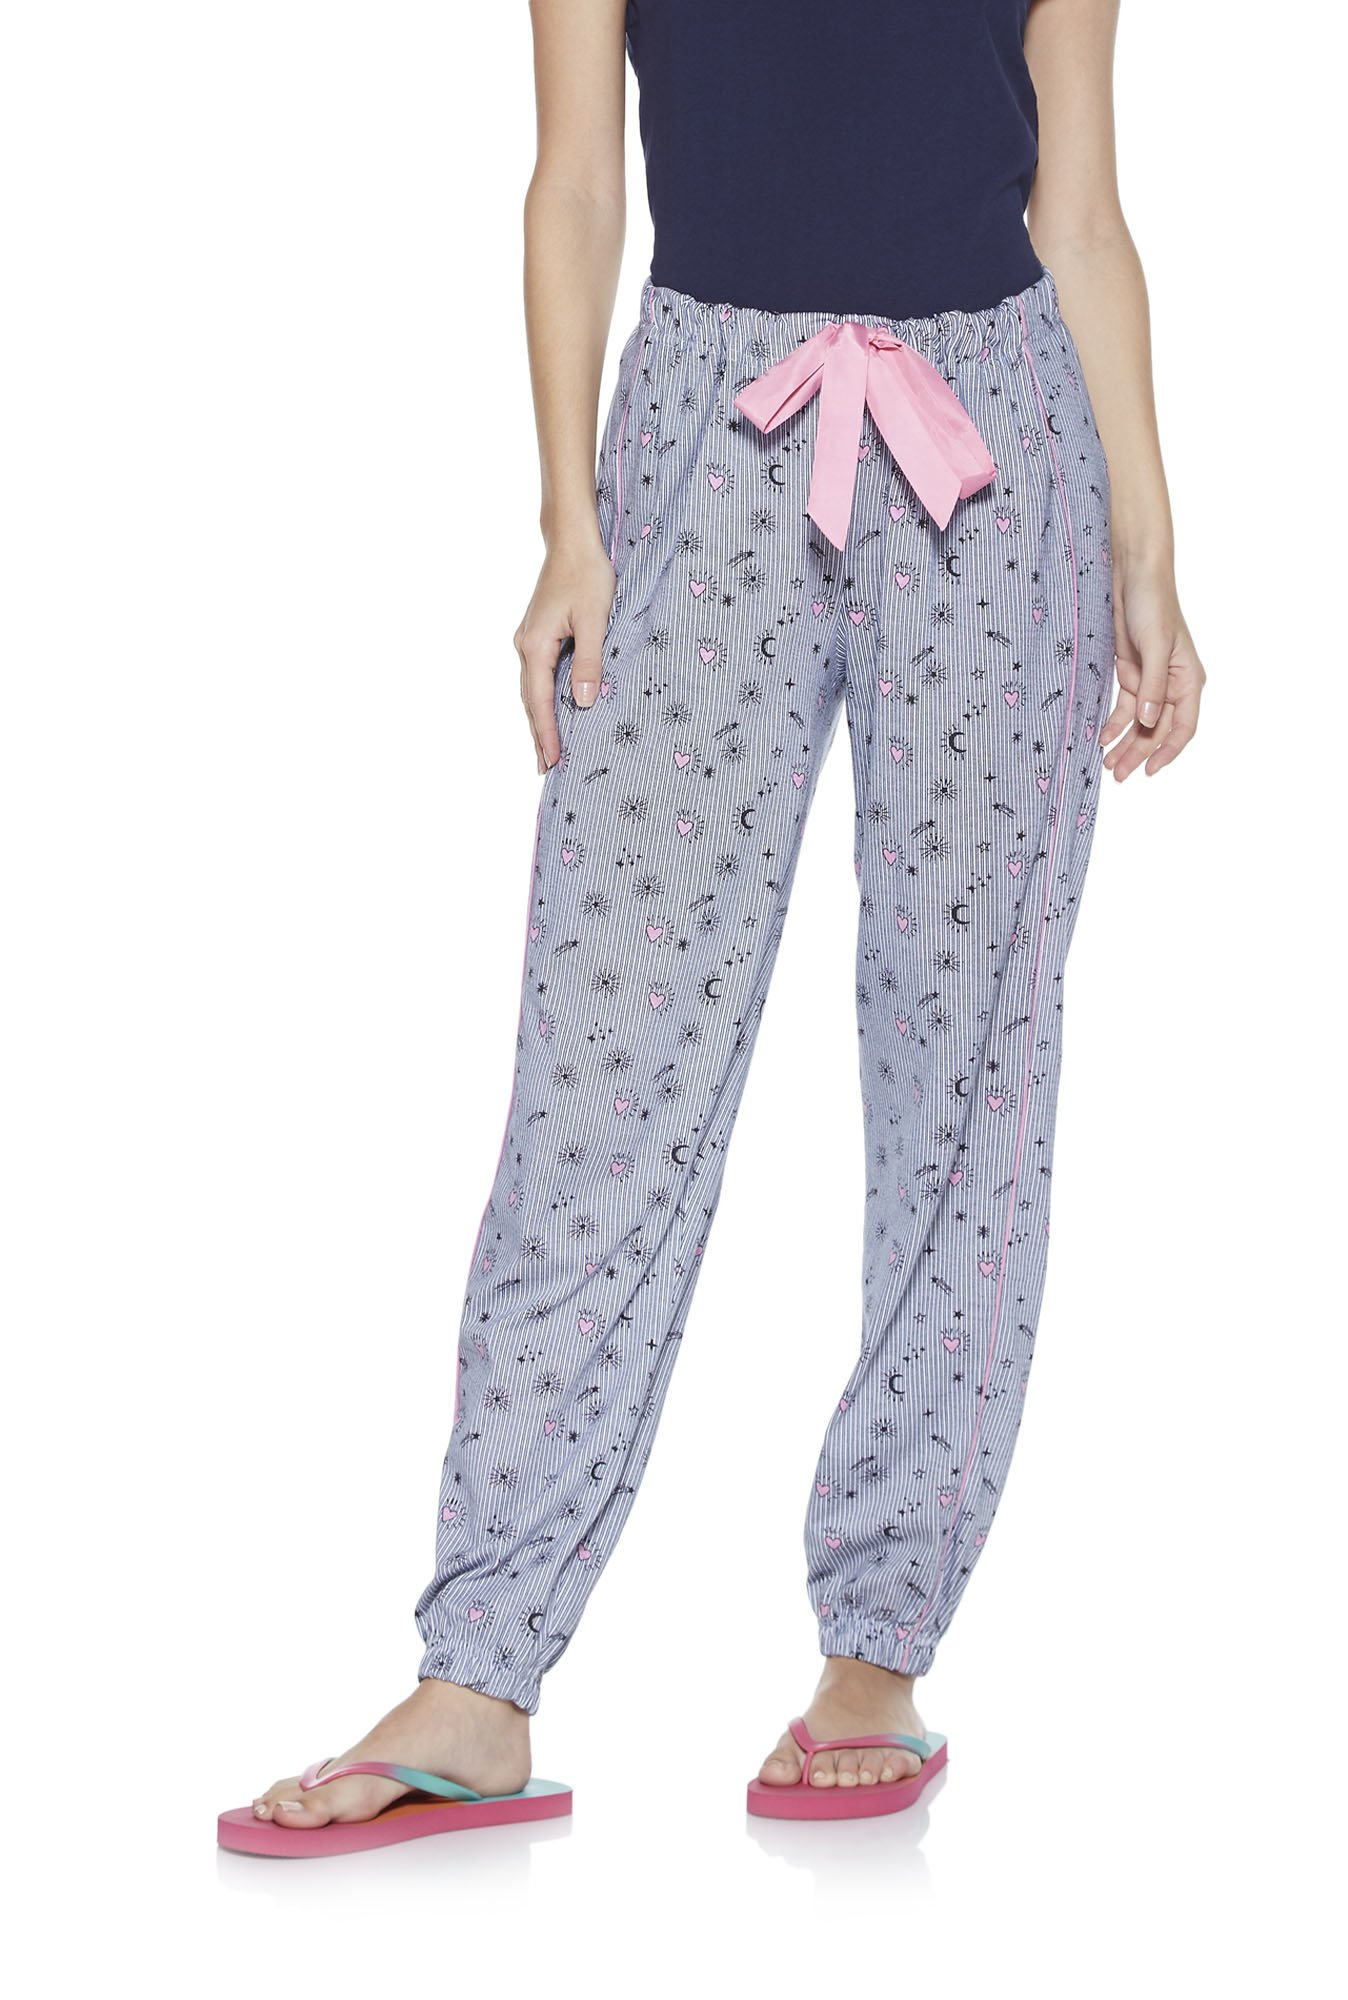 3 Loungewear Pieces That Will Be Your Perfect Weekend Buddies